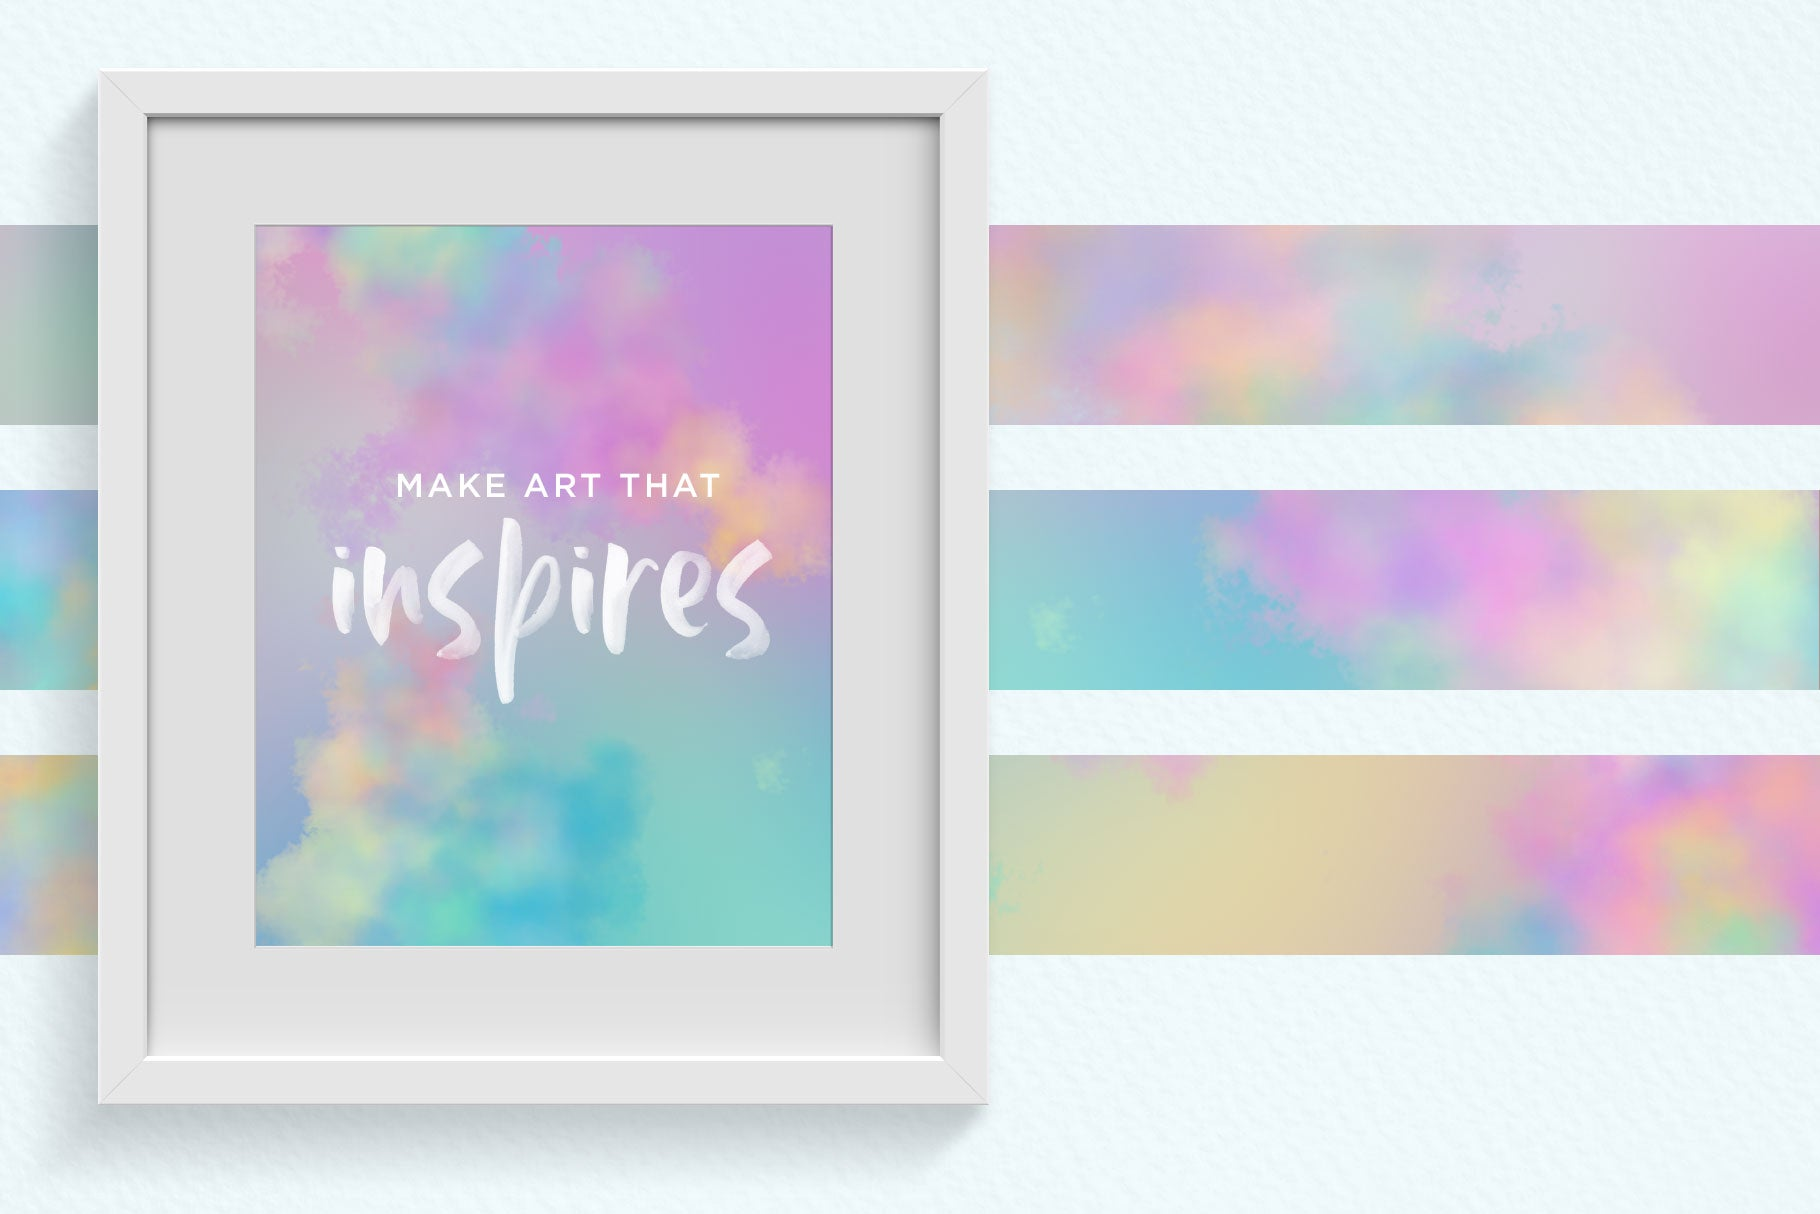 Pastel Watercolor Cloud Backgrounds Clipart - Creators Couture